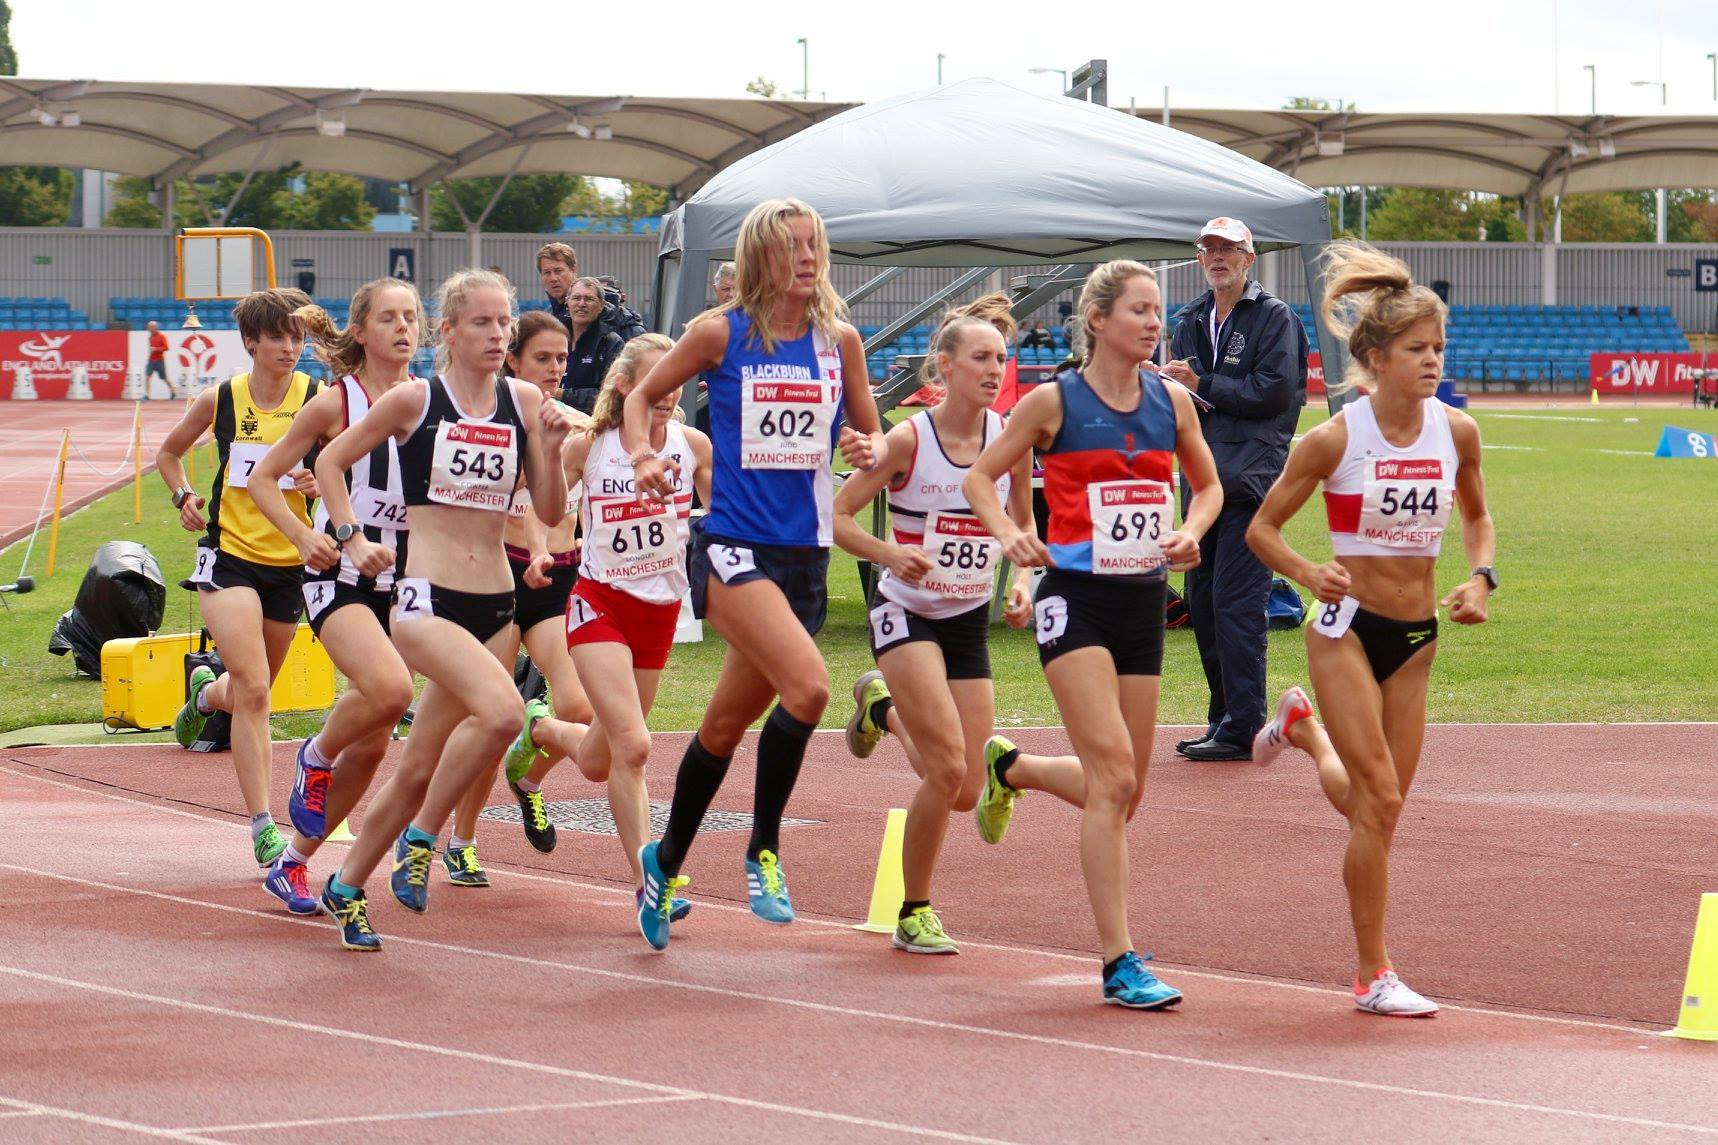 Jess Wins Double Gold at EA Championships & Breaks Club 5000m Record – Mid Lancs T&F League at Barrow – Helen takes the deckchair at Lancaster 5k